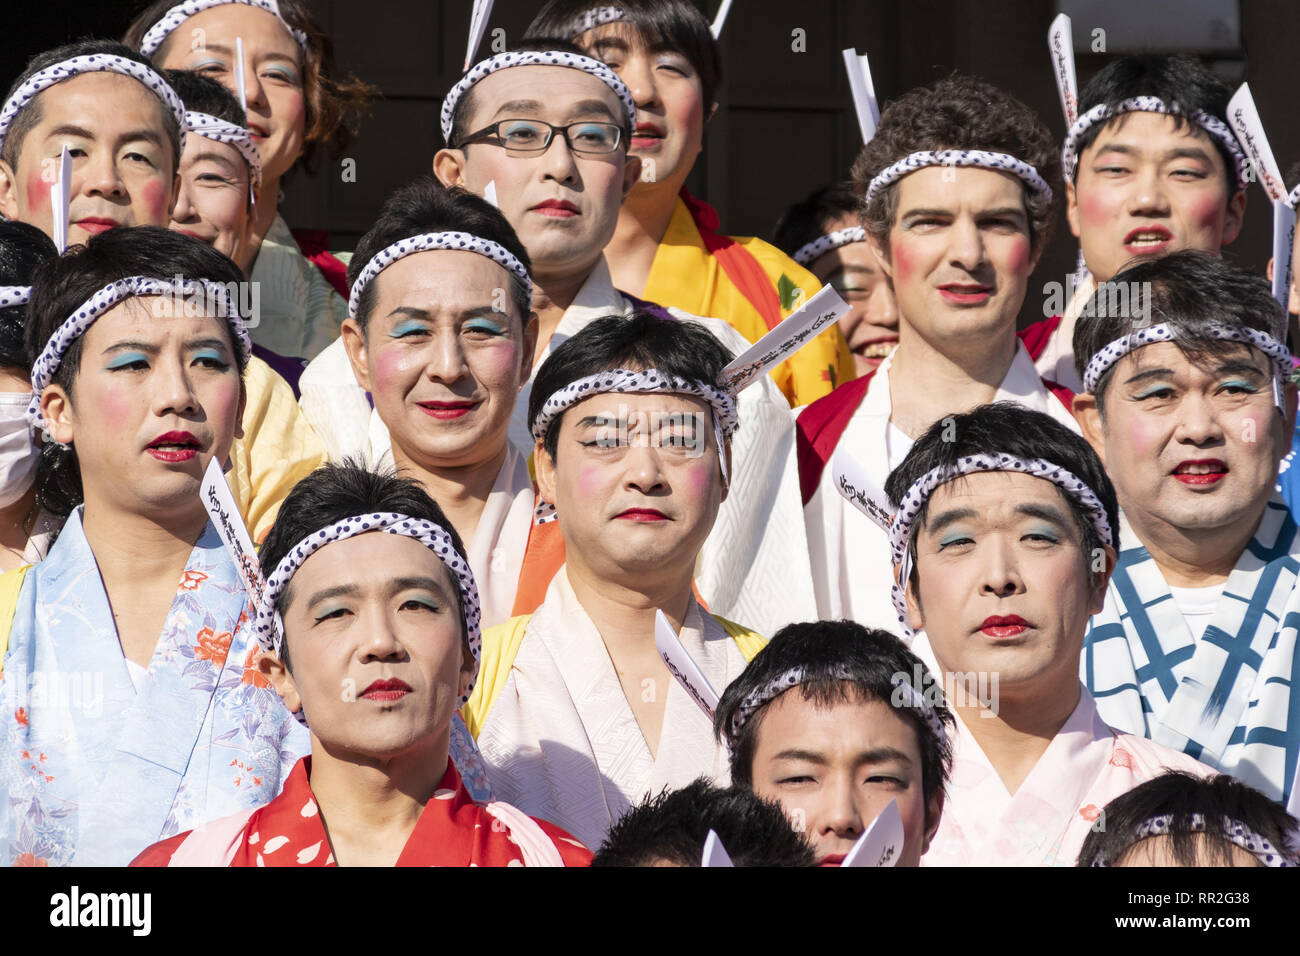 Tokyo, Japan. 24th Feb, 2019. Participants dressed in women's kimonos and wearing makeup, pose for a group photo during the Ikazuchi no Daihannya festival in the Shinzoin Temple. Festival volunteers carry 6 containers from the Shinzoin Temple around the neighborhood to chase away evil spirits. The origins of this annual event are disputed, but the legend tells the priest of Shinzoin Temple visited house to house to prevent the spread of cholera during the late Edo era. Another legend of a man who lived in the neighborhood dressed in women's kimono to scare away the bad spirits for his si Stock Photo